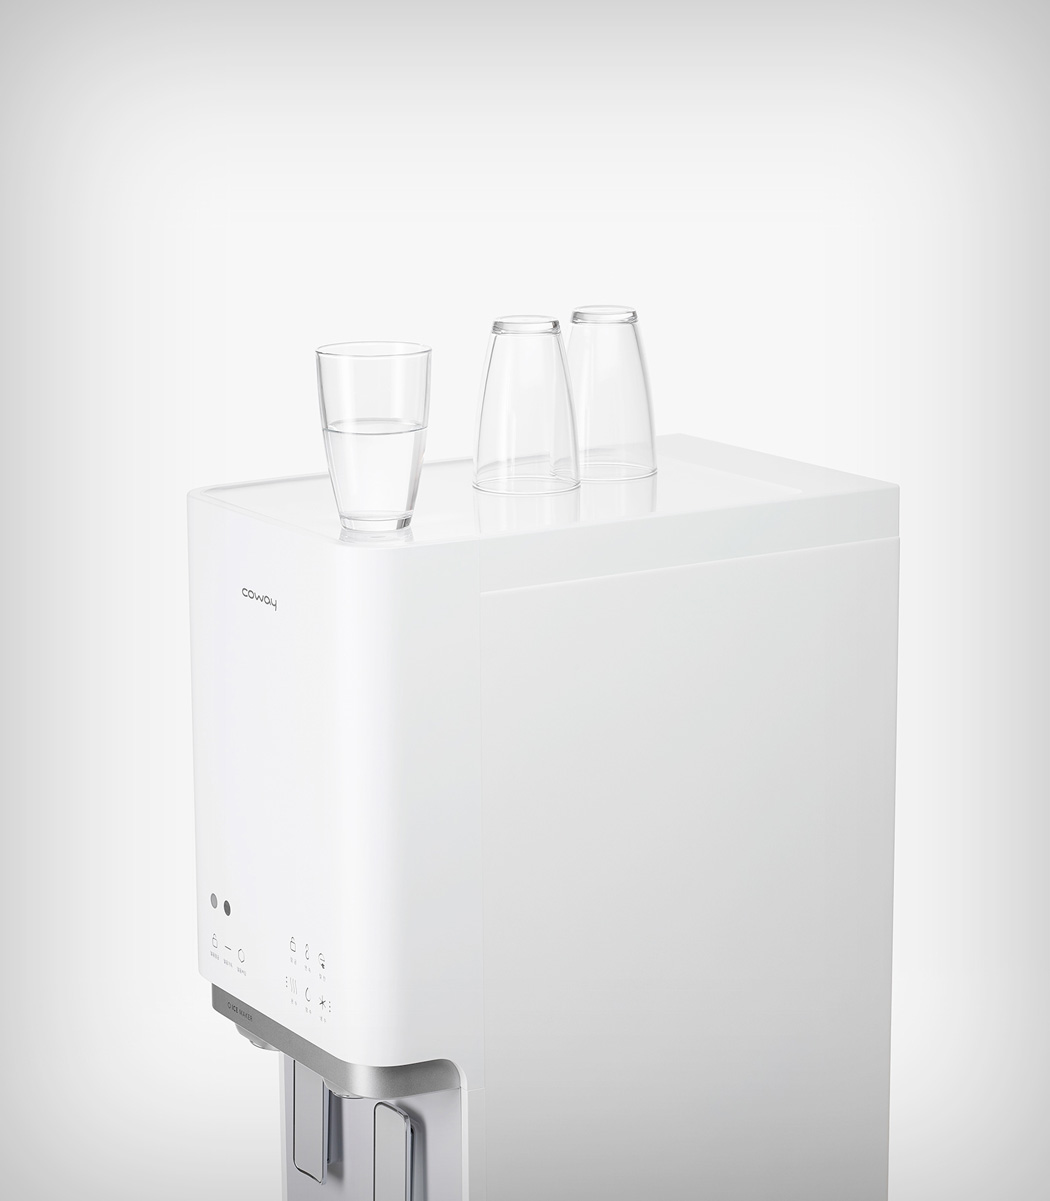 chpi_620_water_purifier_04